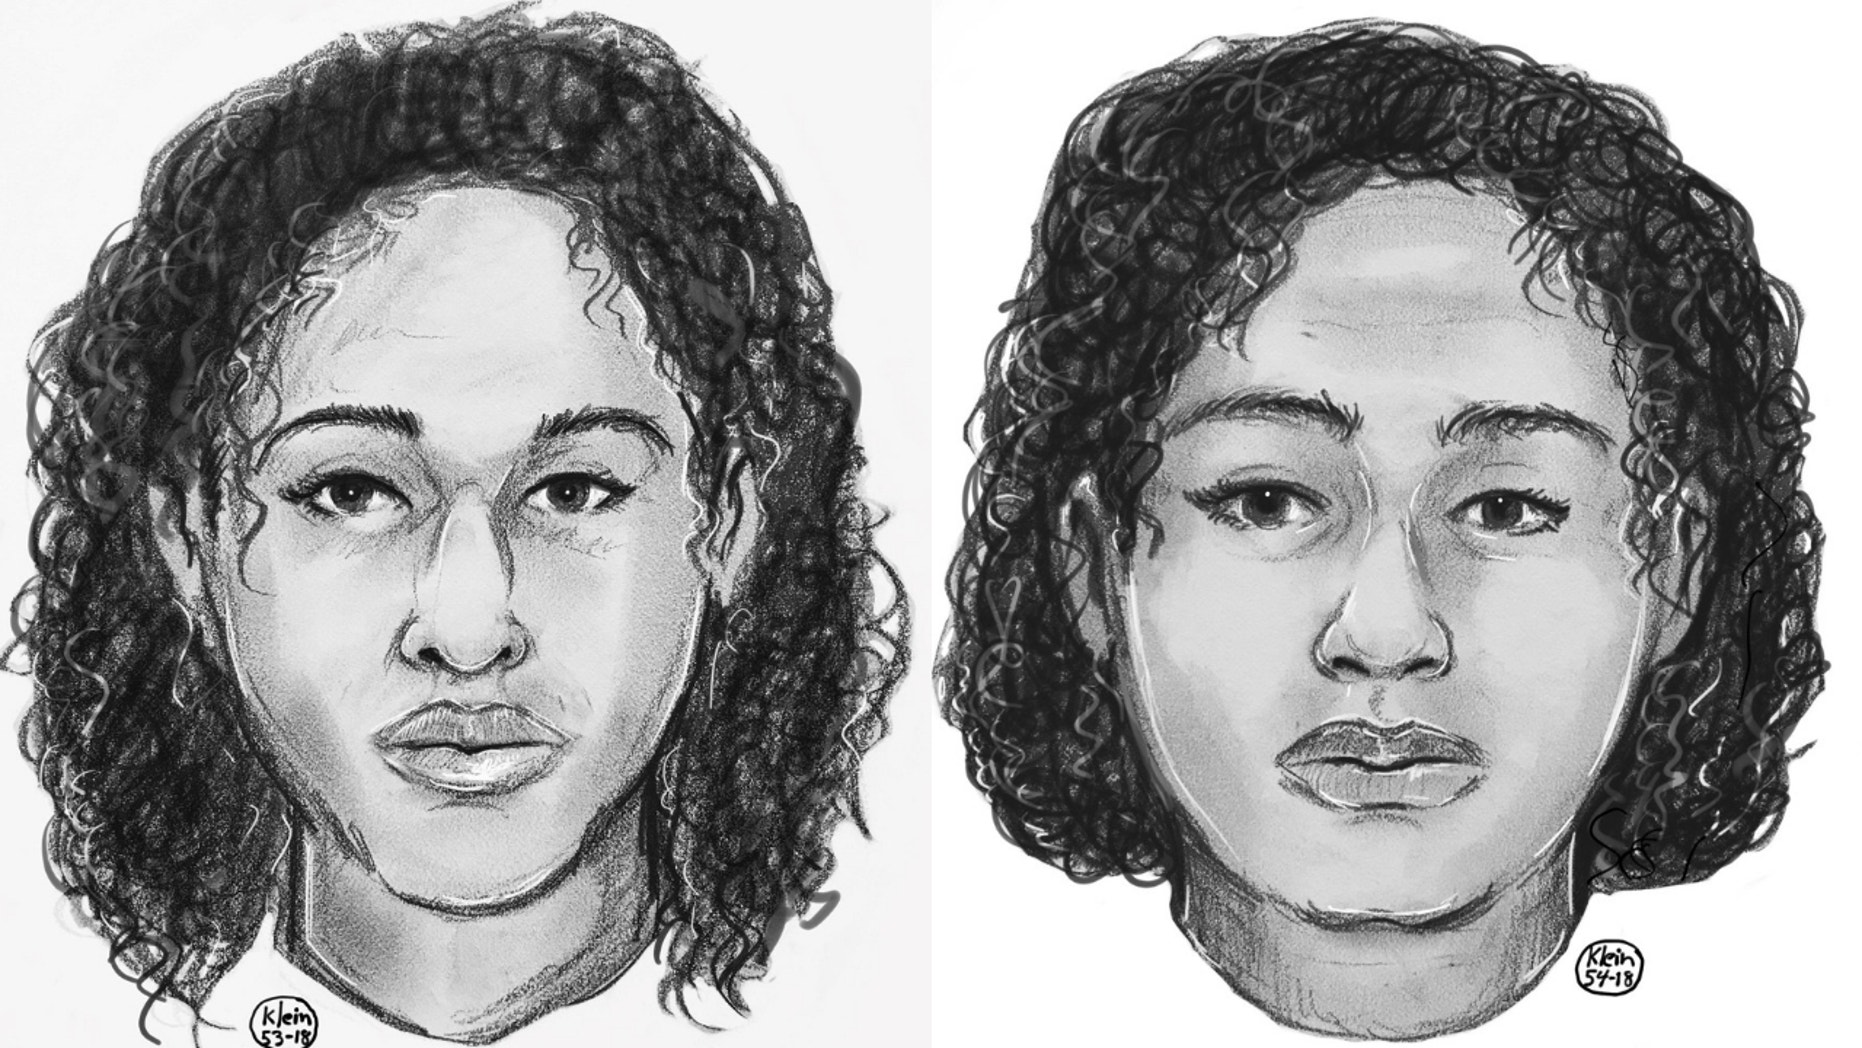 Sketches were released of the two women who were found bound by duct tape near the Hudson River in Manhattan's Upper West Side neighborhood.